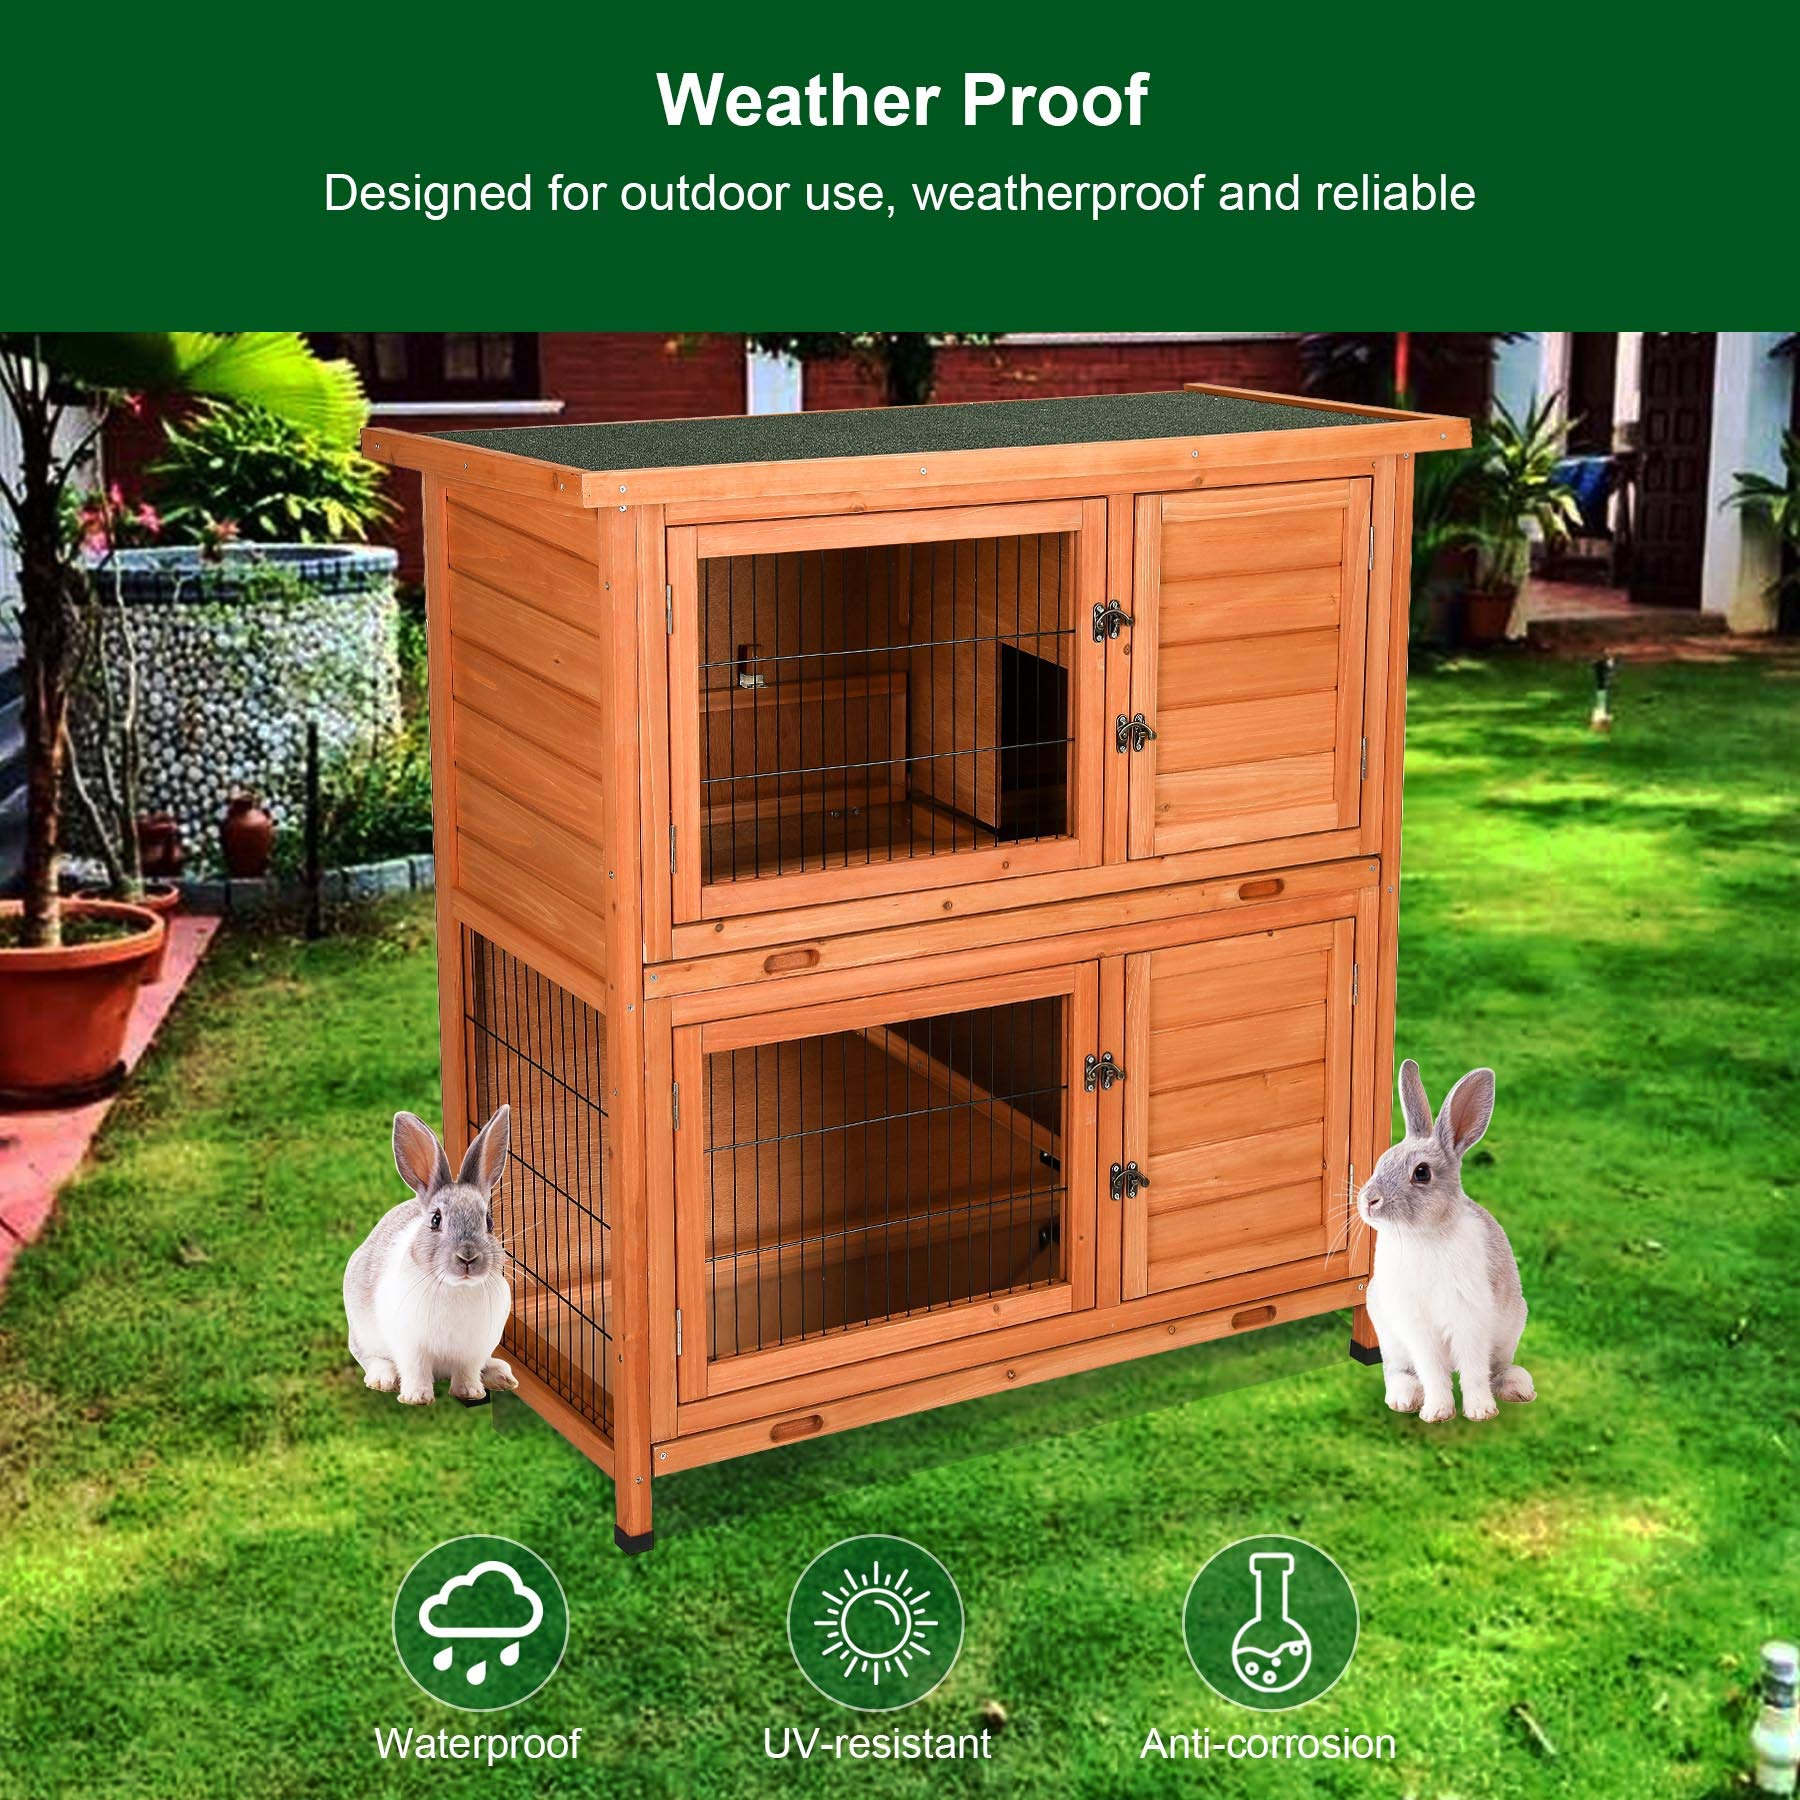 CO-Z 2 Story Outdoor Wooden Bunny Cage Rabbit Hutch Guinea Pig House in Nature Color with Ladder for Small Animals by CO-Z (Image #6)